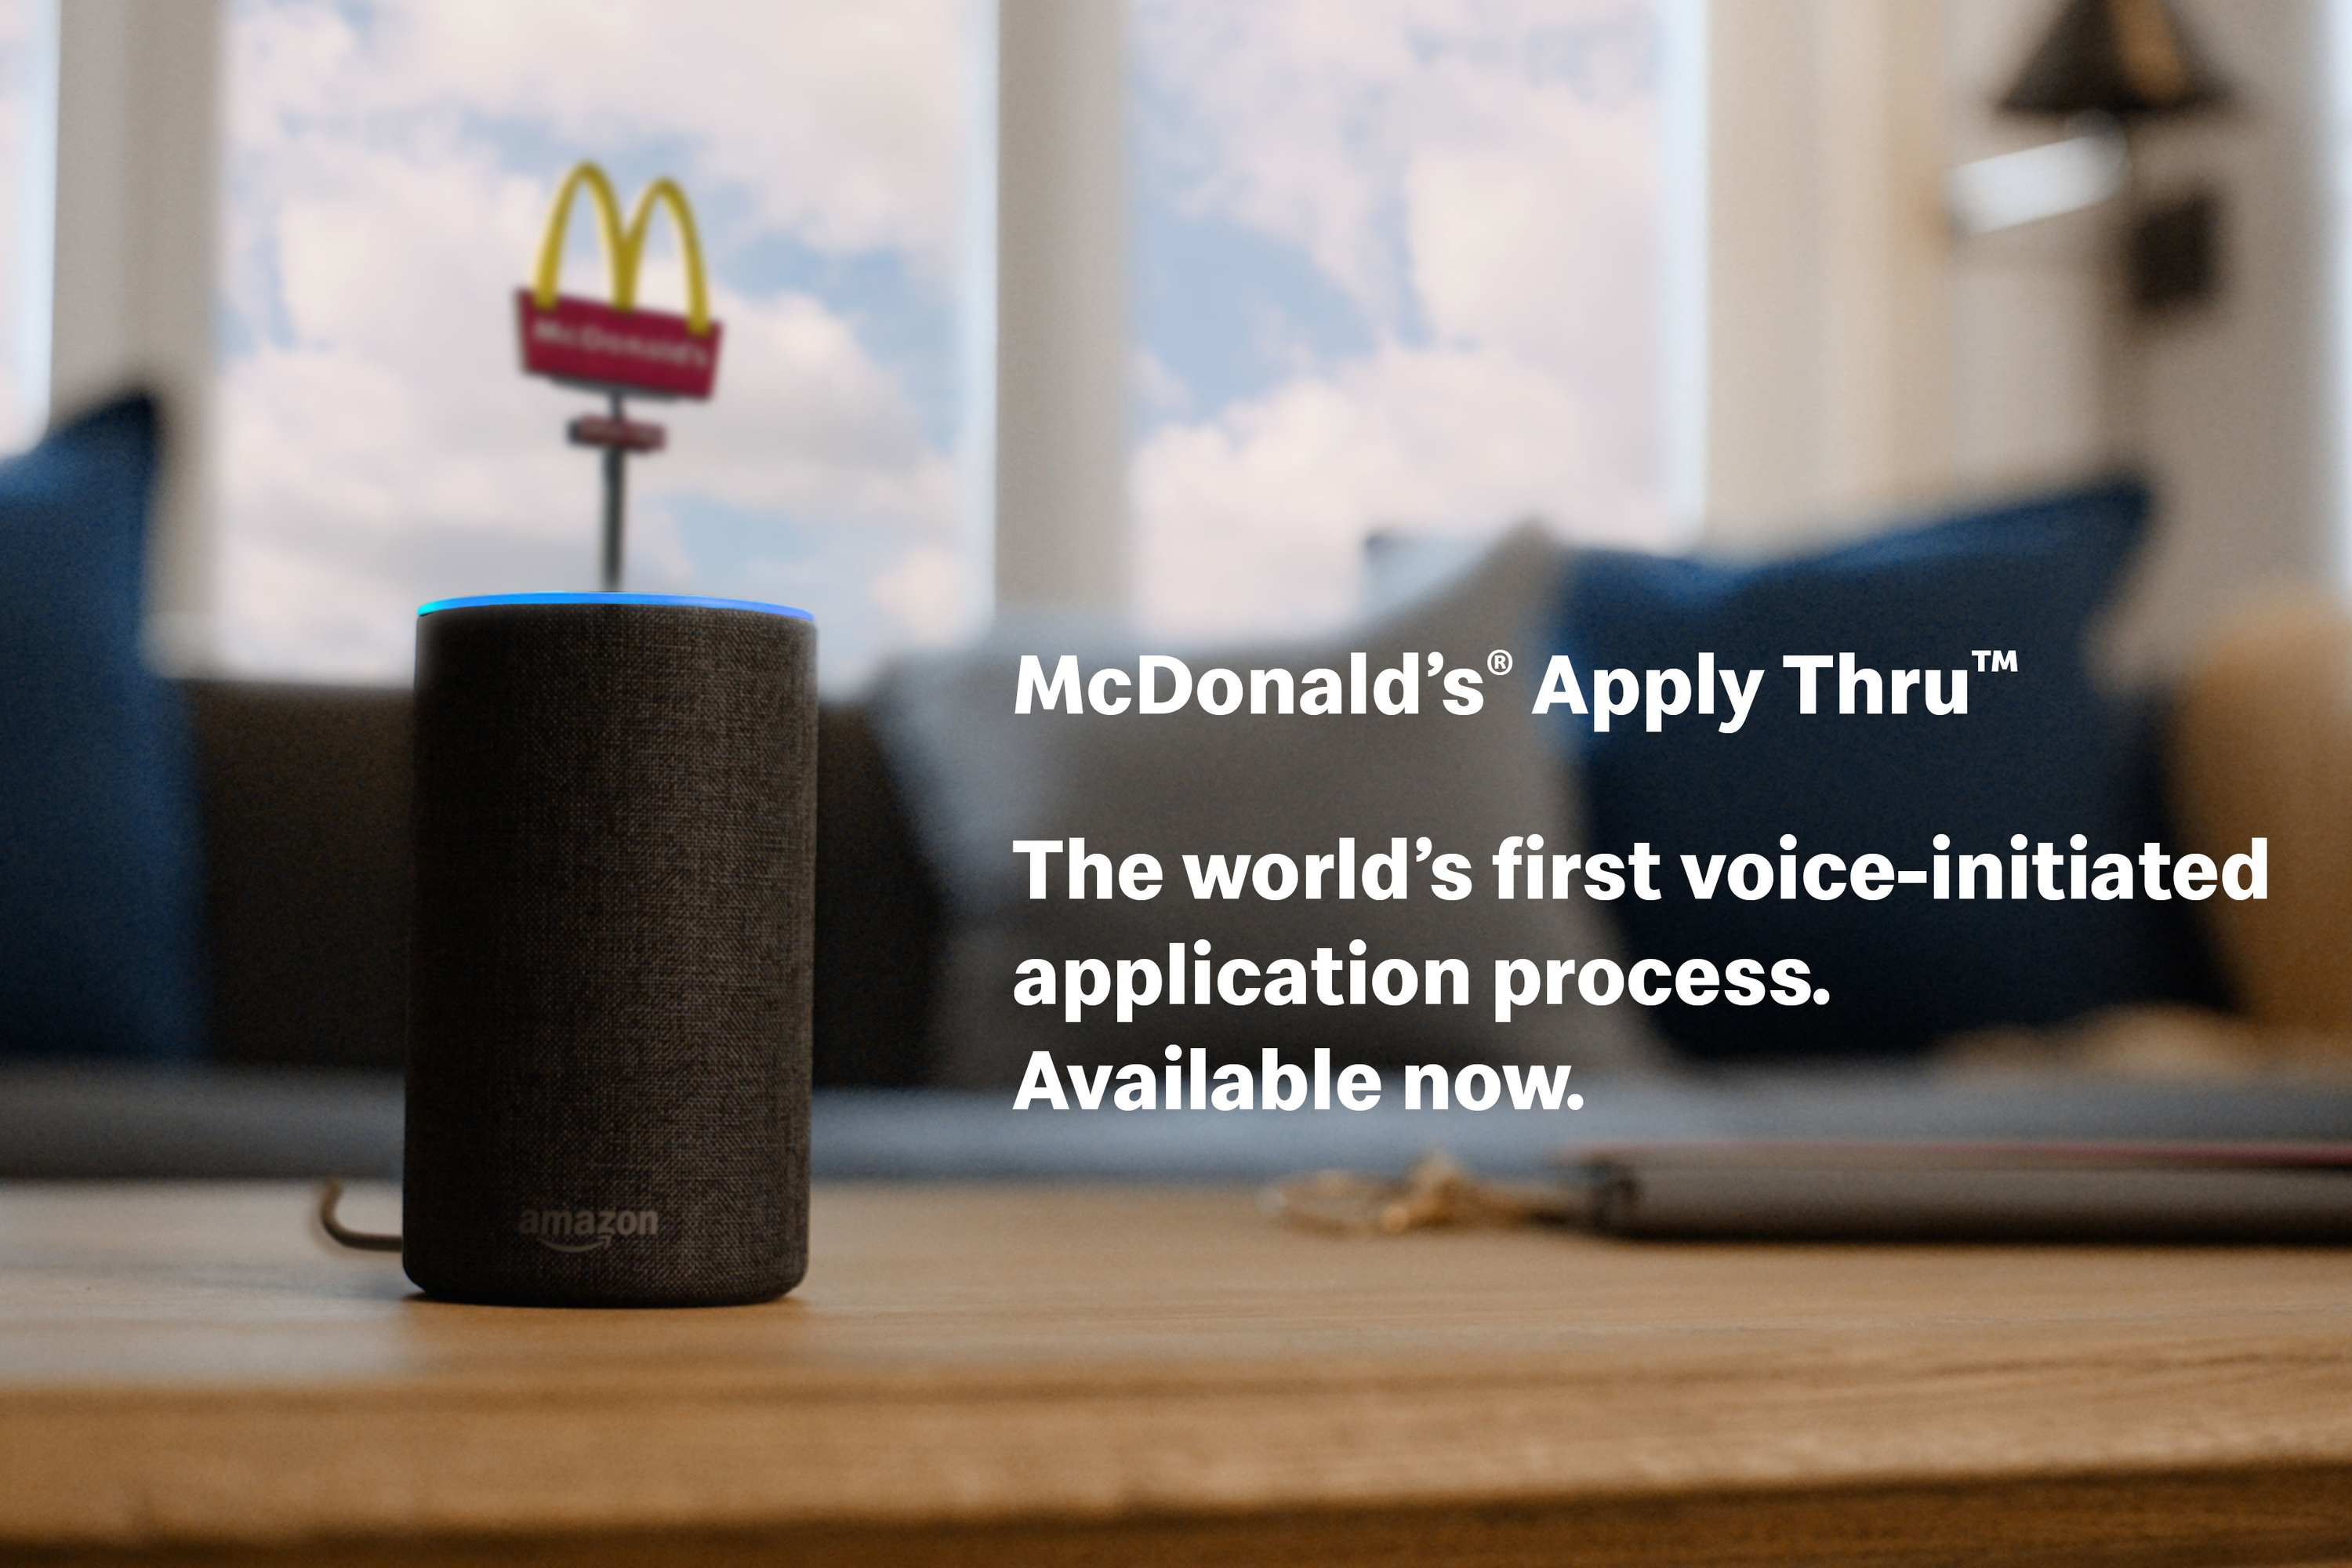 Job seekers can now start the McDonald's application process by speaking to Alexa or the Google Assistant